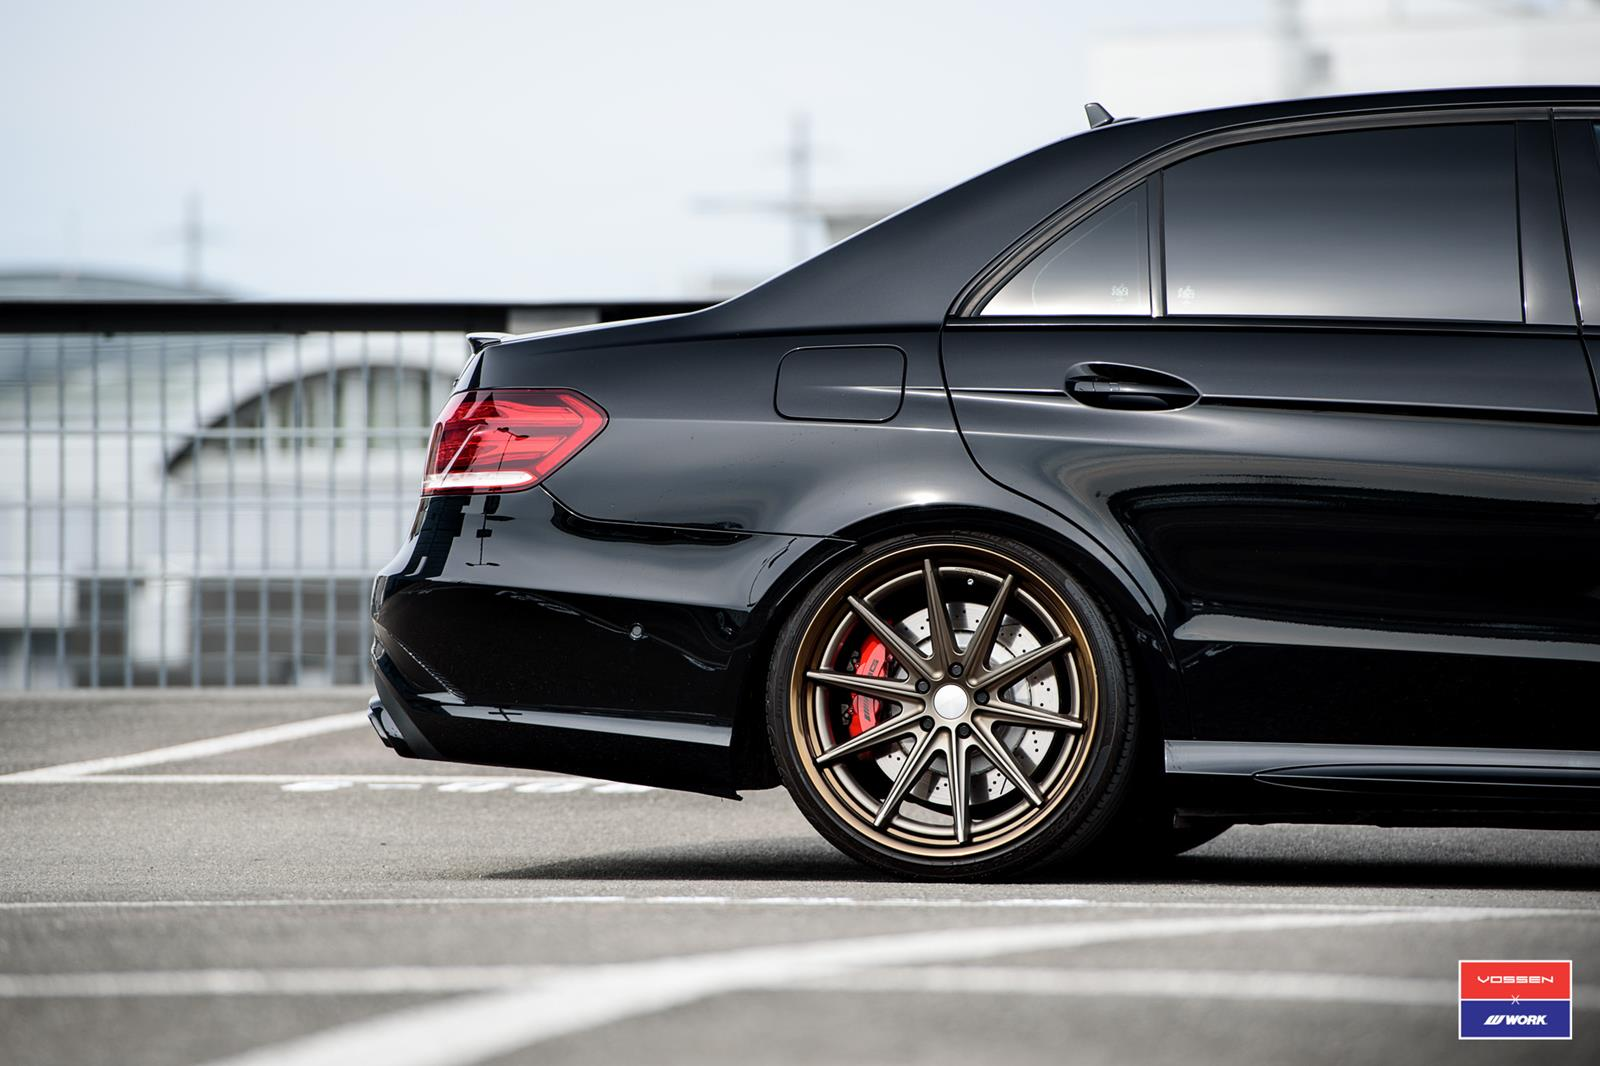 mercedes benz e class vossen x work series vws 1 vossen wheels. Black Bedroom Furniture Sets. Home Design Ideas